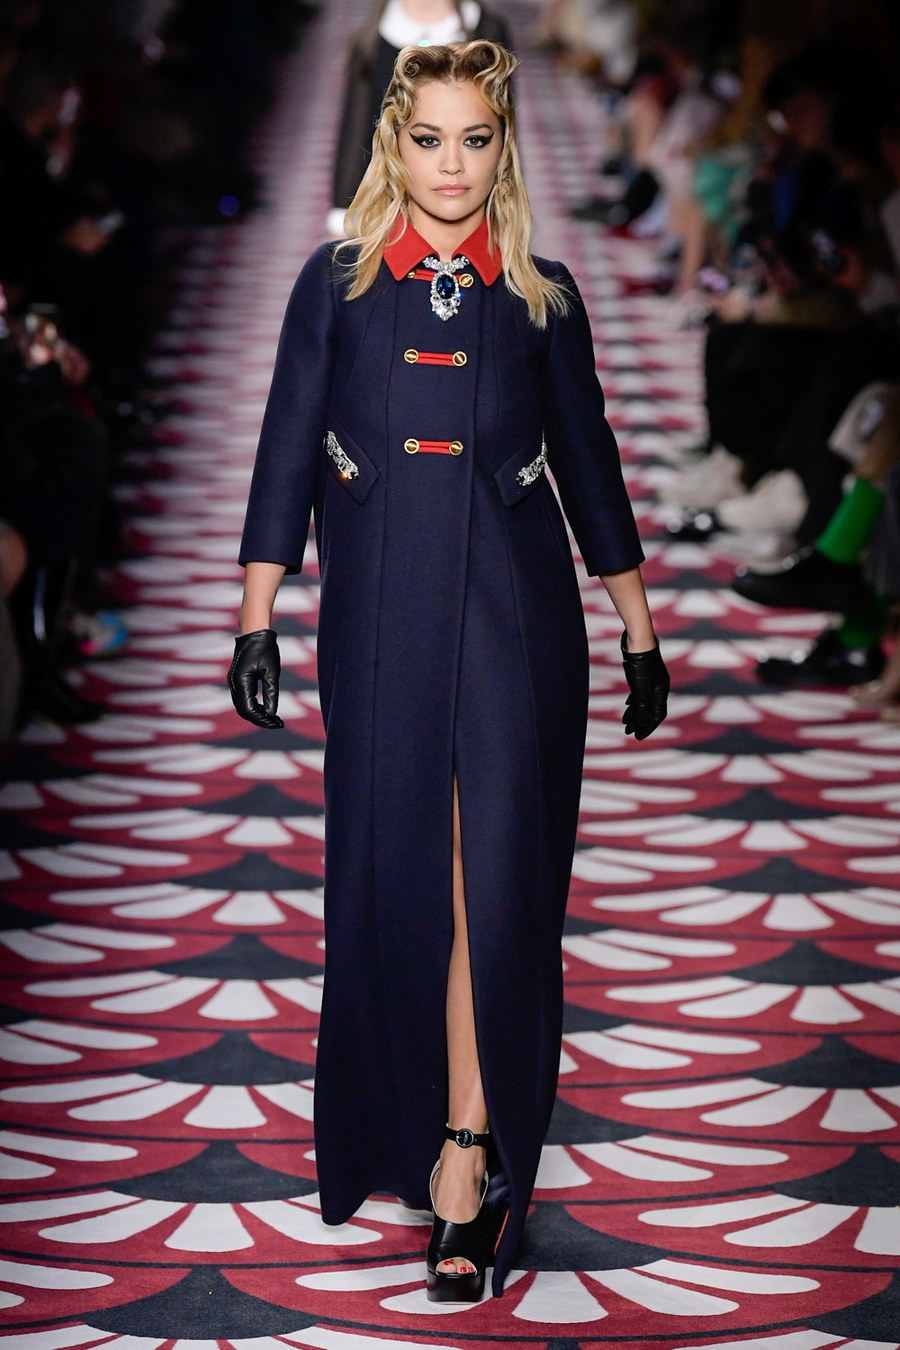 Rita Ora looks sensational in a navy jewel-embellished military jacket as she struts down the catwalk